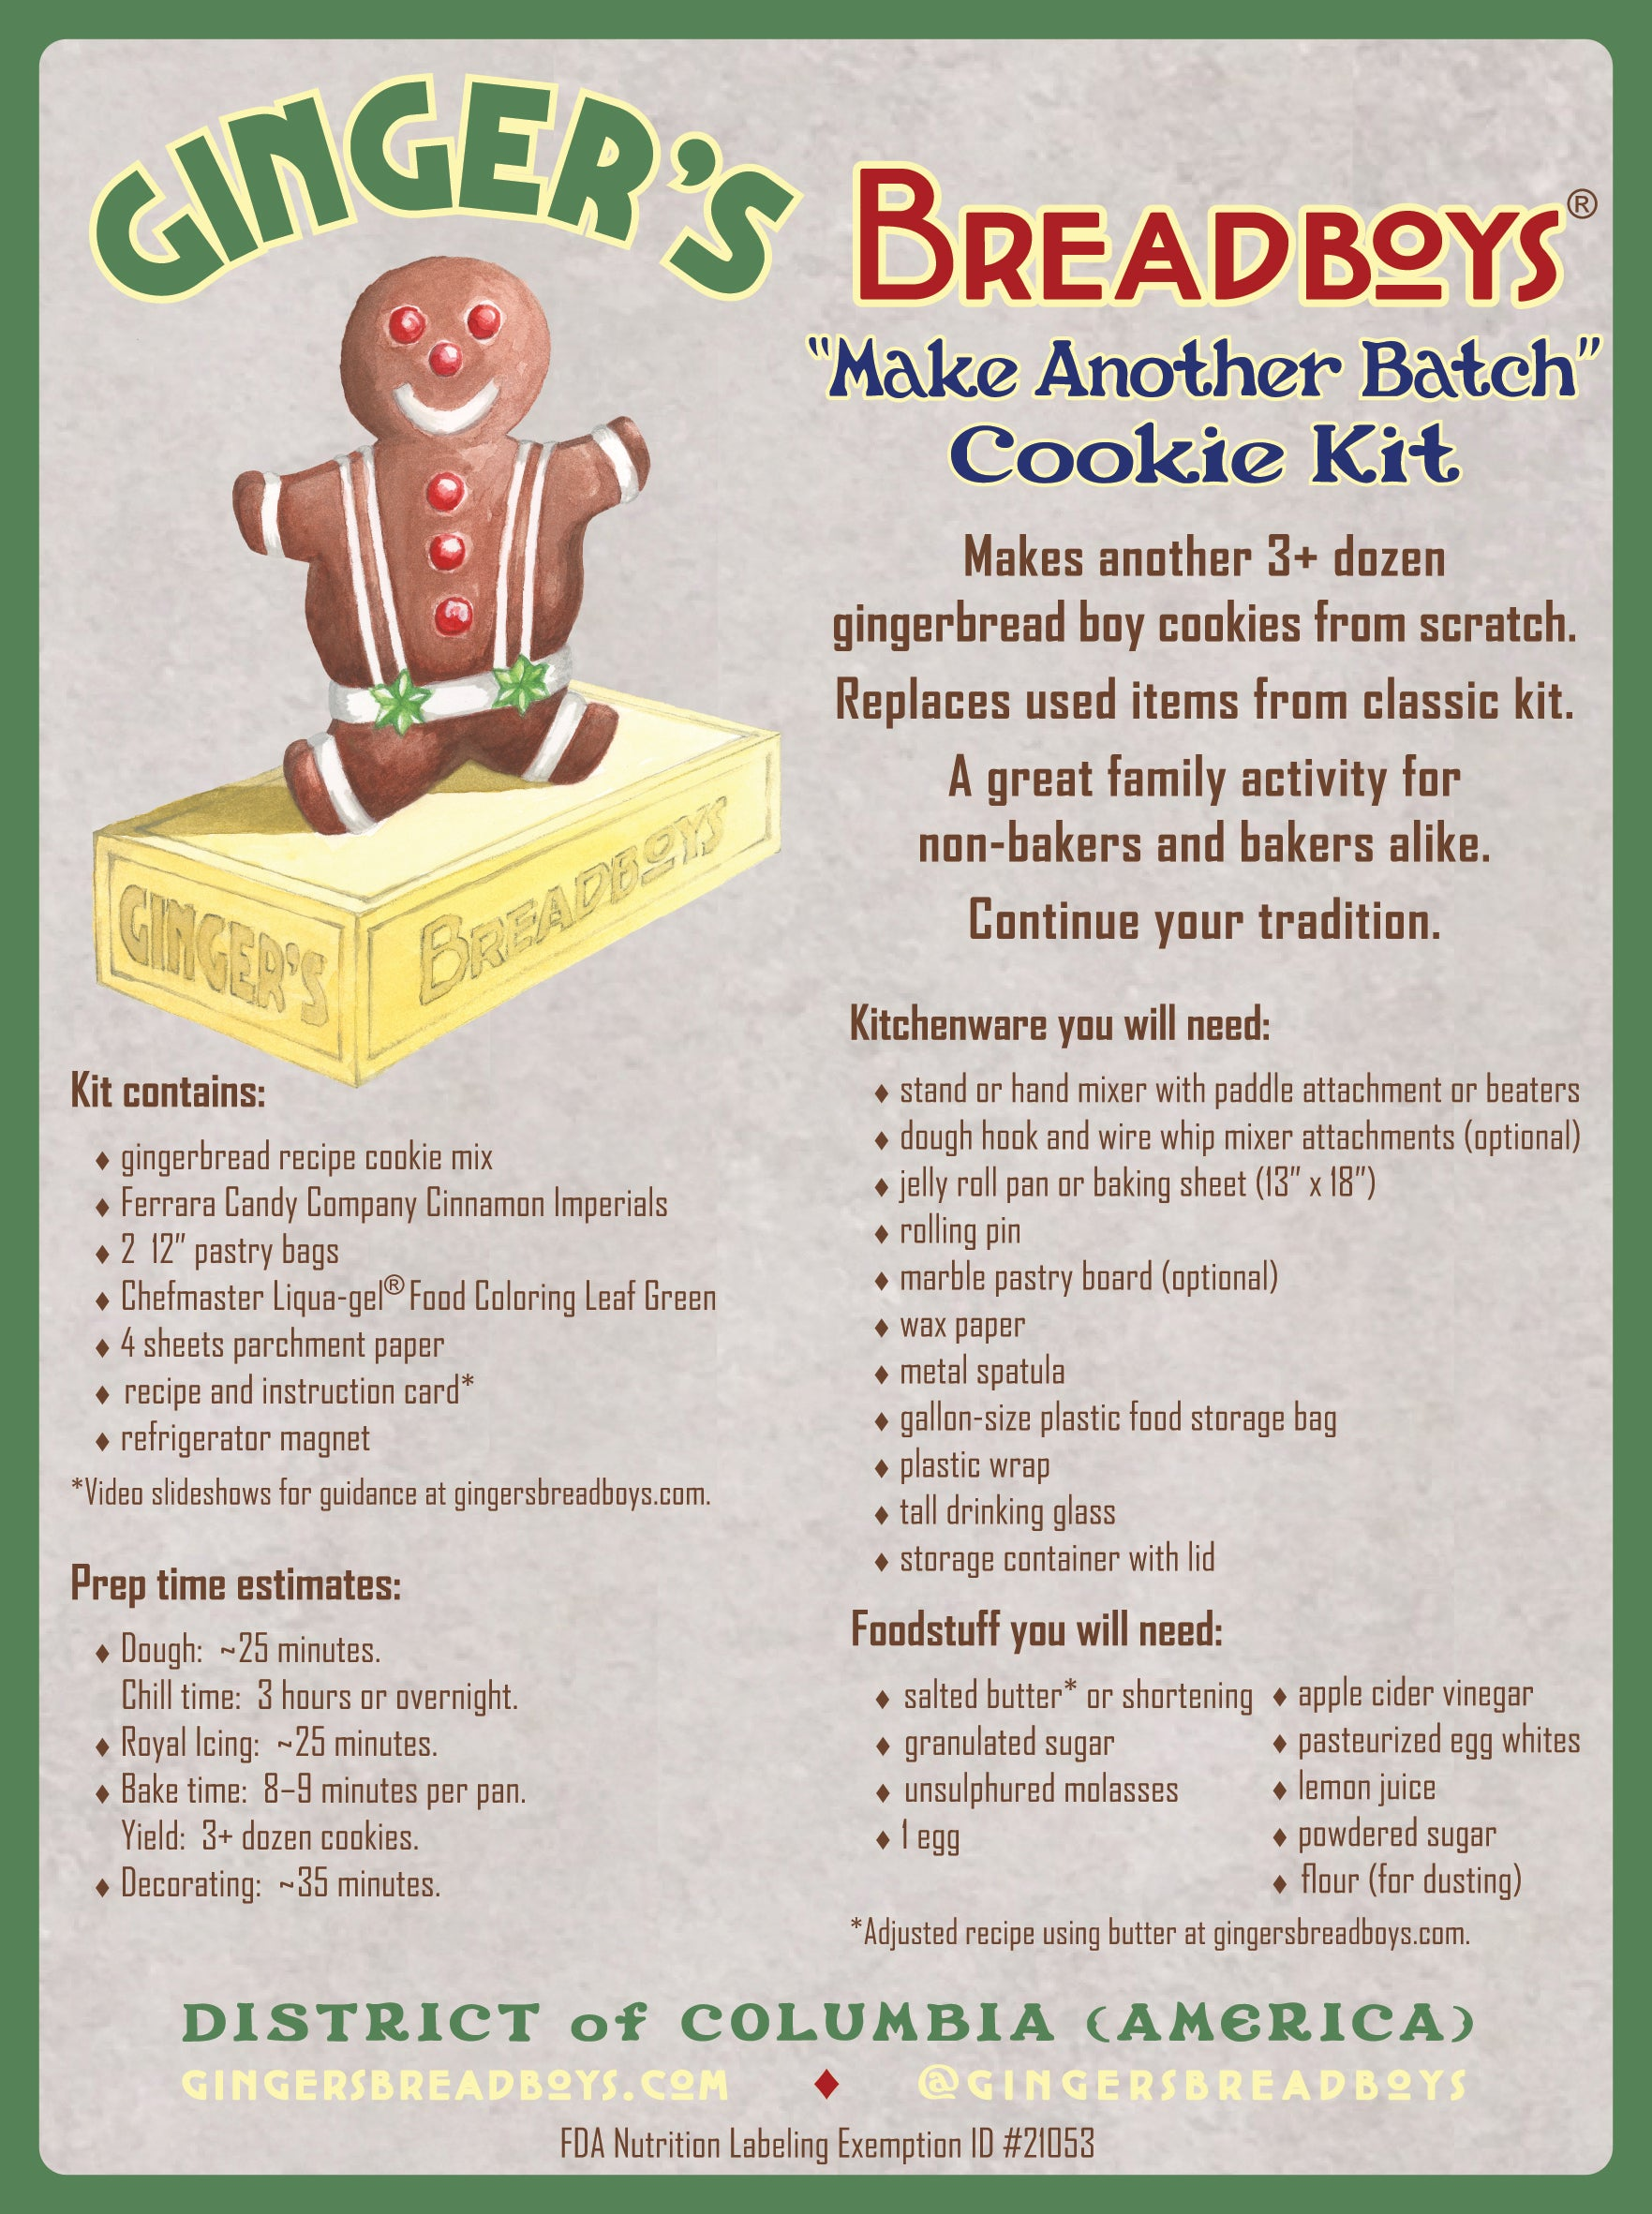 Make Another Batch cookie kit